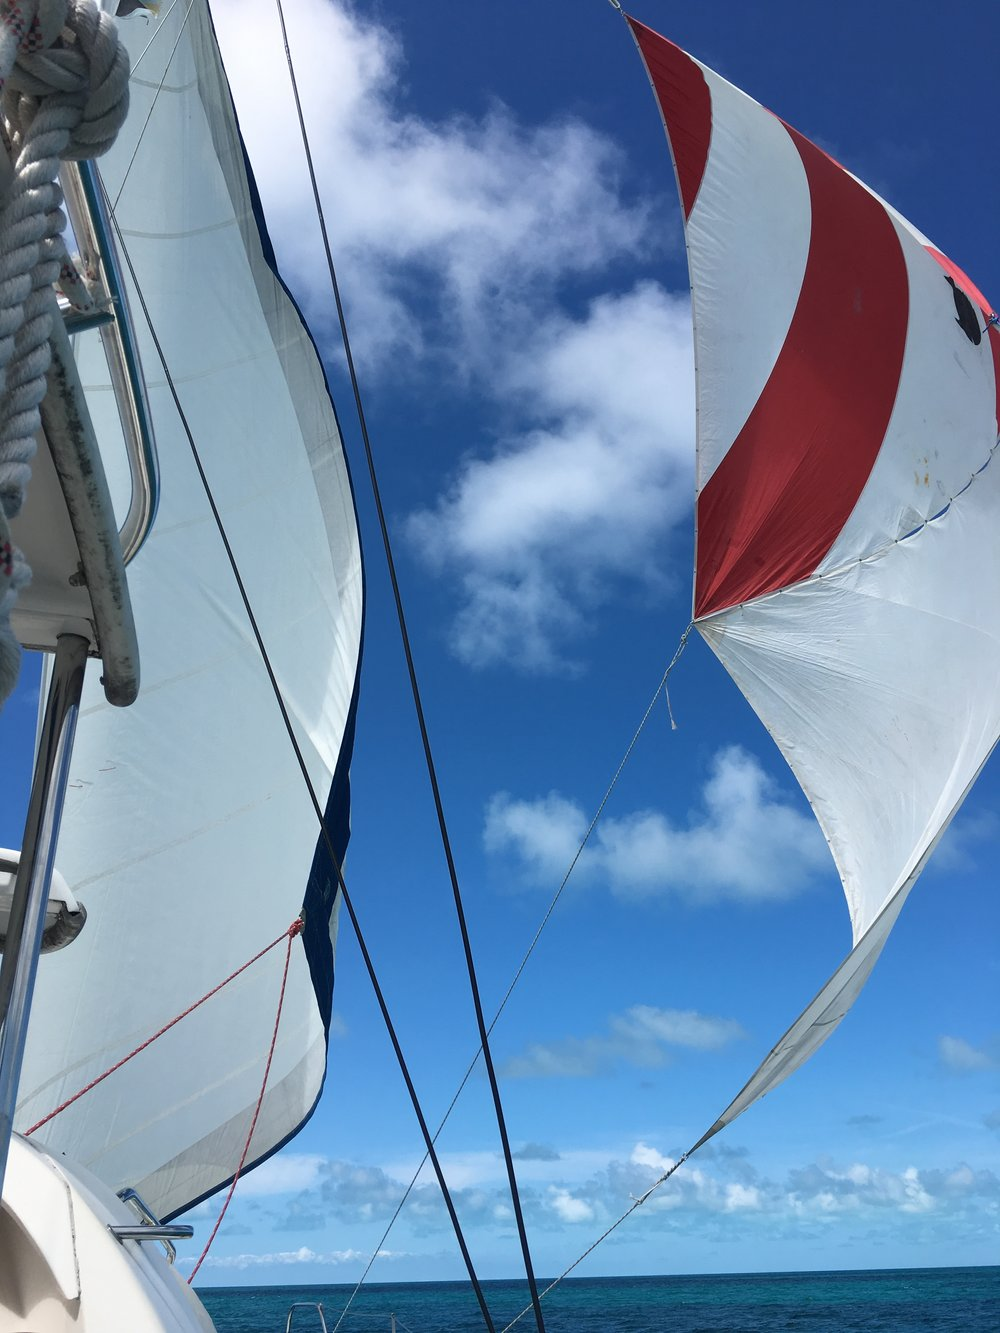 Two sailfish sails = one spinnaker